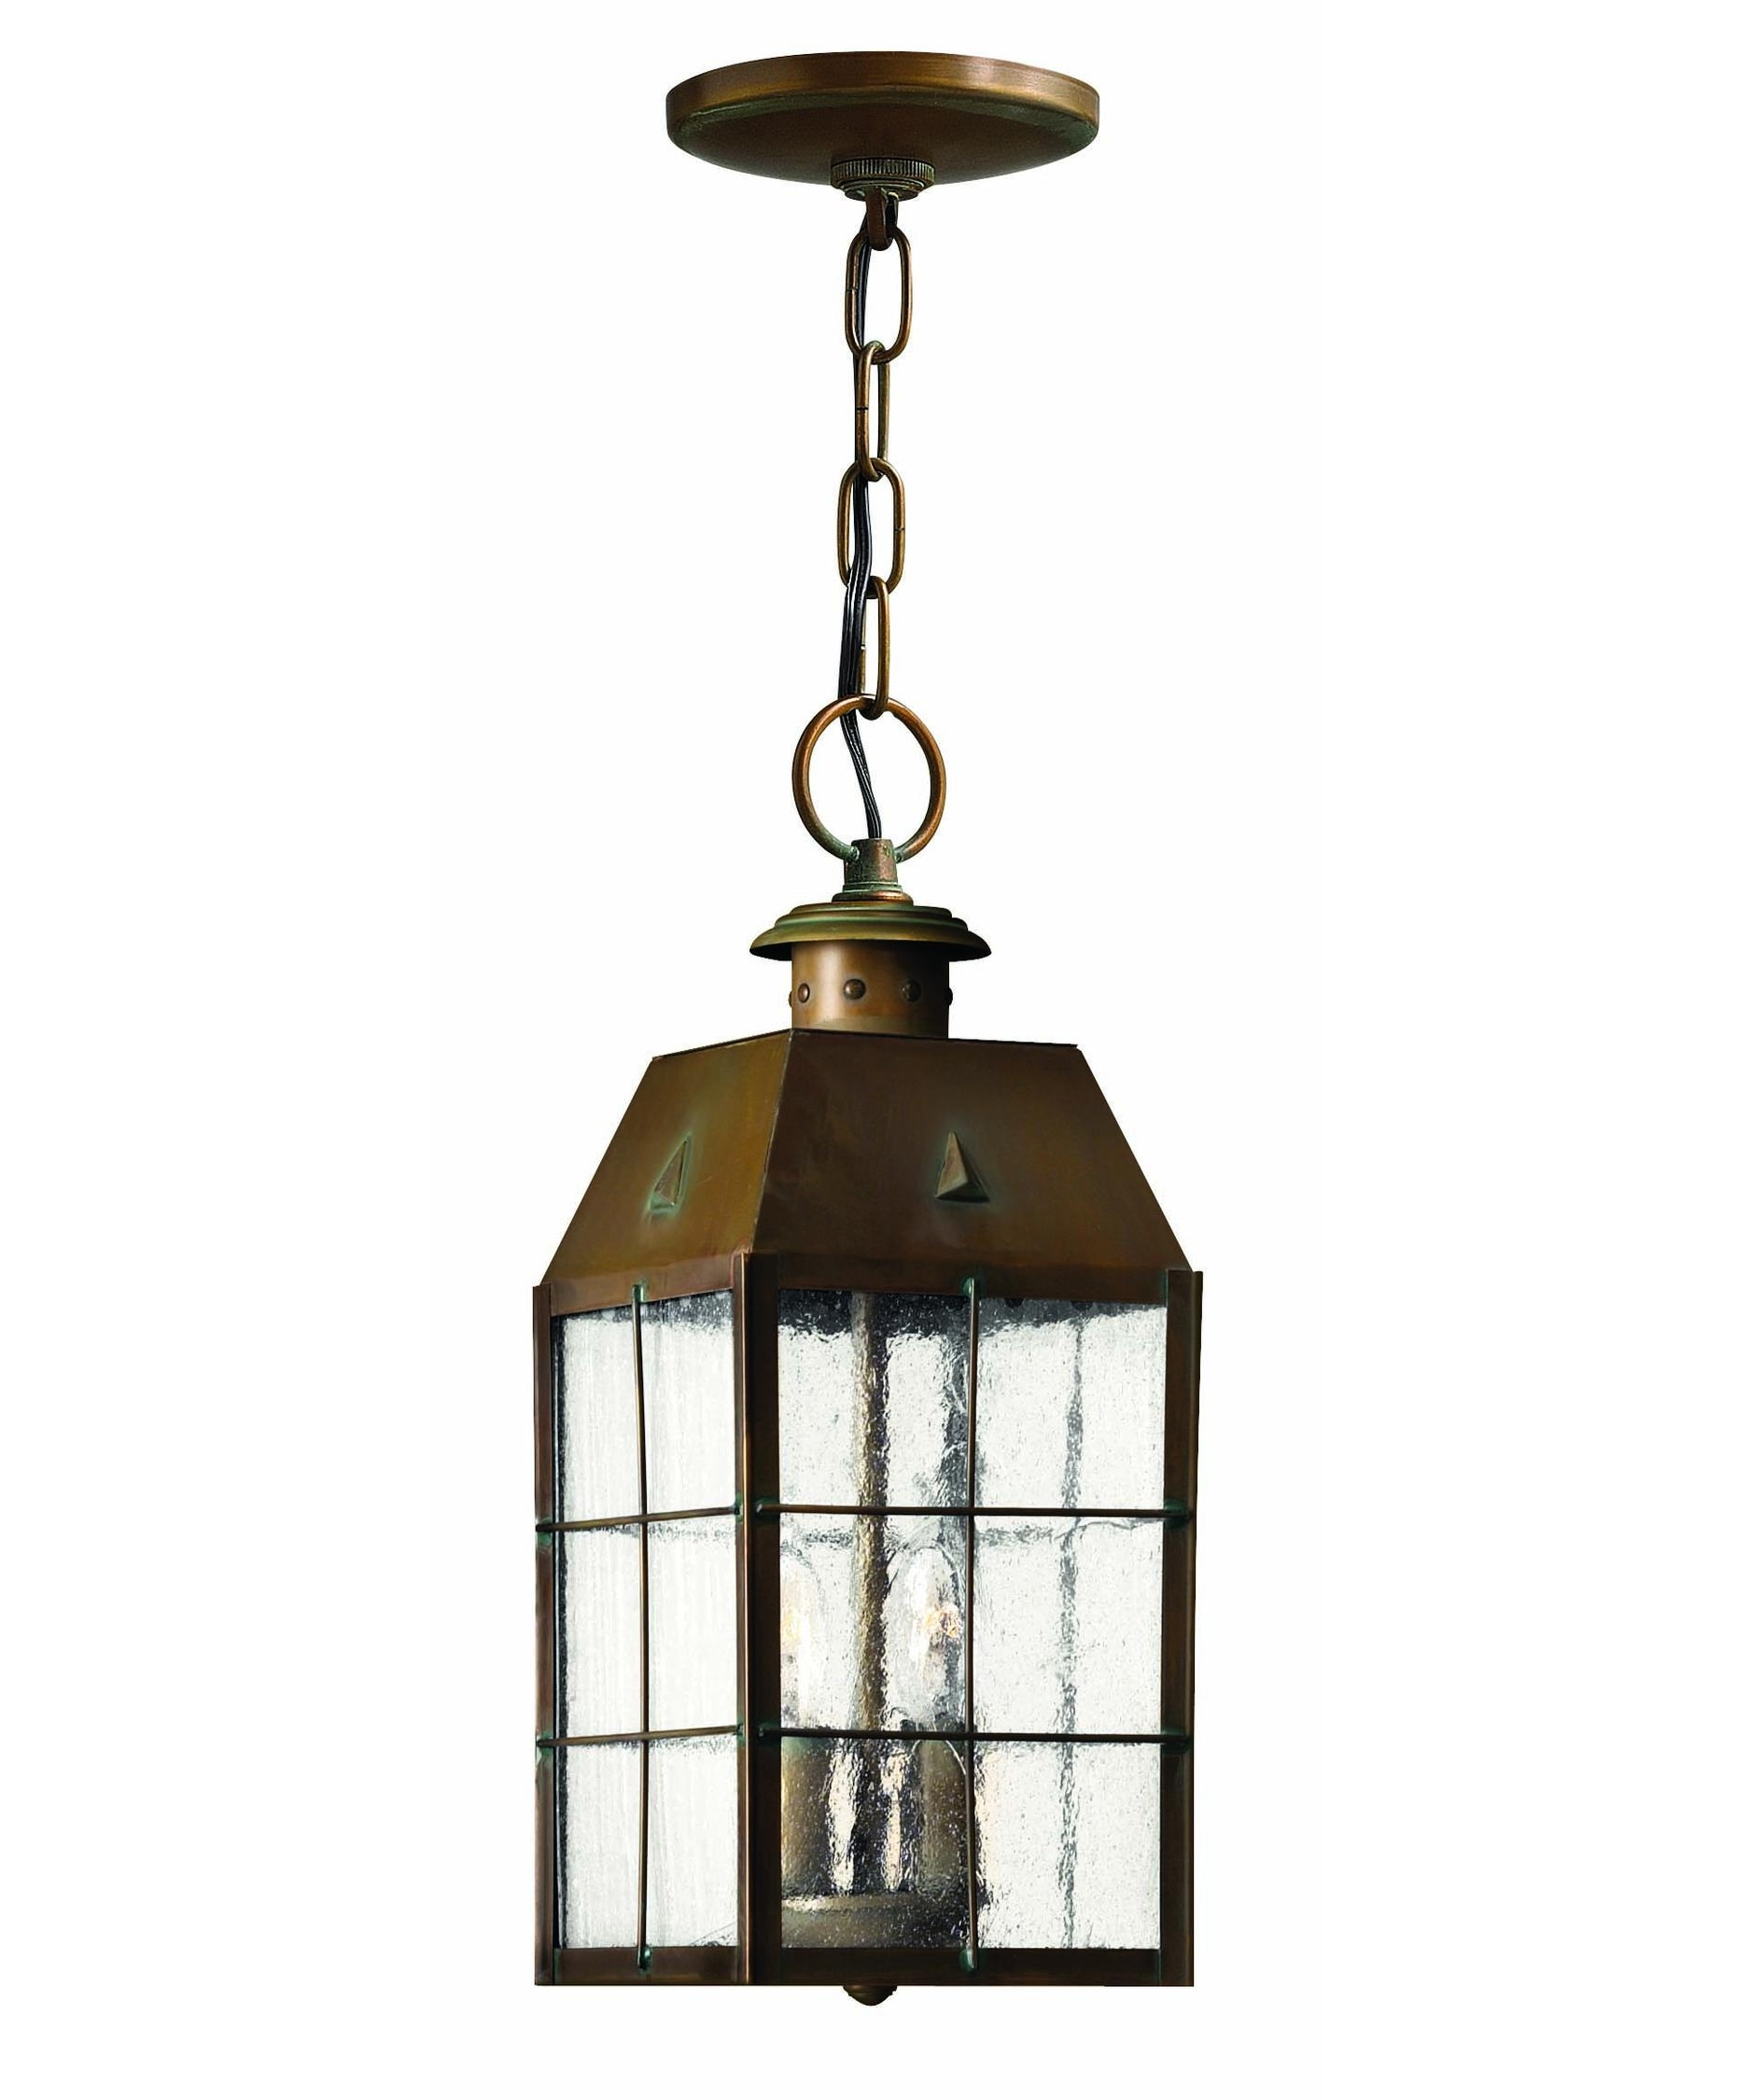 Hinkley Lighting 2372 Nantucket 6 Inch Wide 2 Light Outdoor Hanging For Most Up To Date Outdoor Hanging Lantern Lights (View 5 of 20)